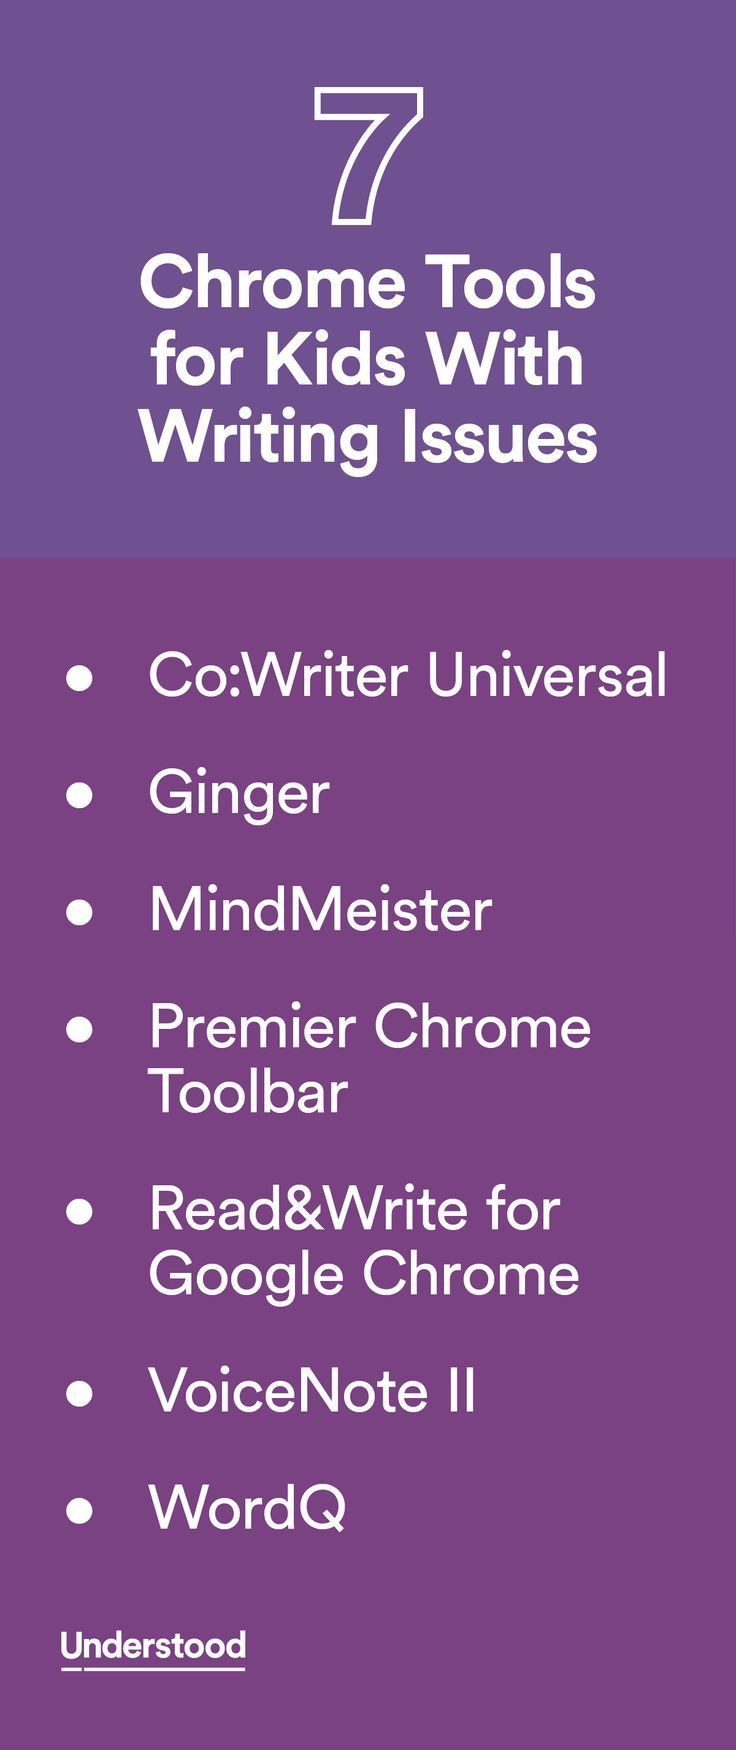 These tools can be used on Chromebooks or on any device with a Chrome browser.